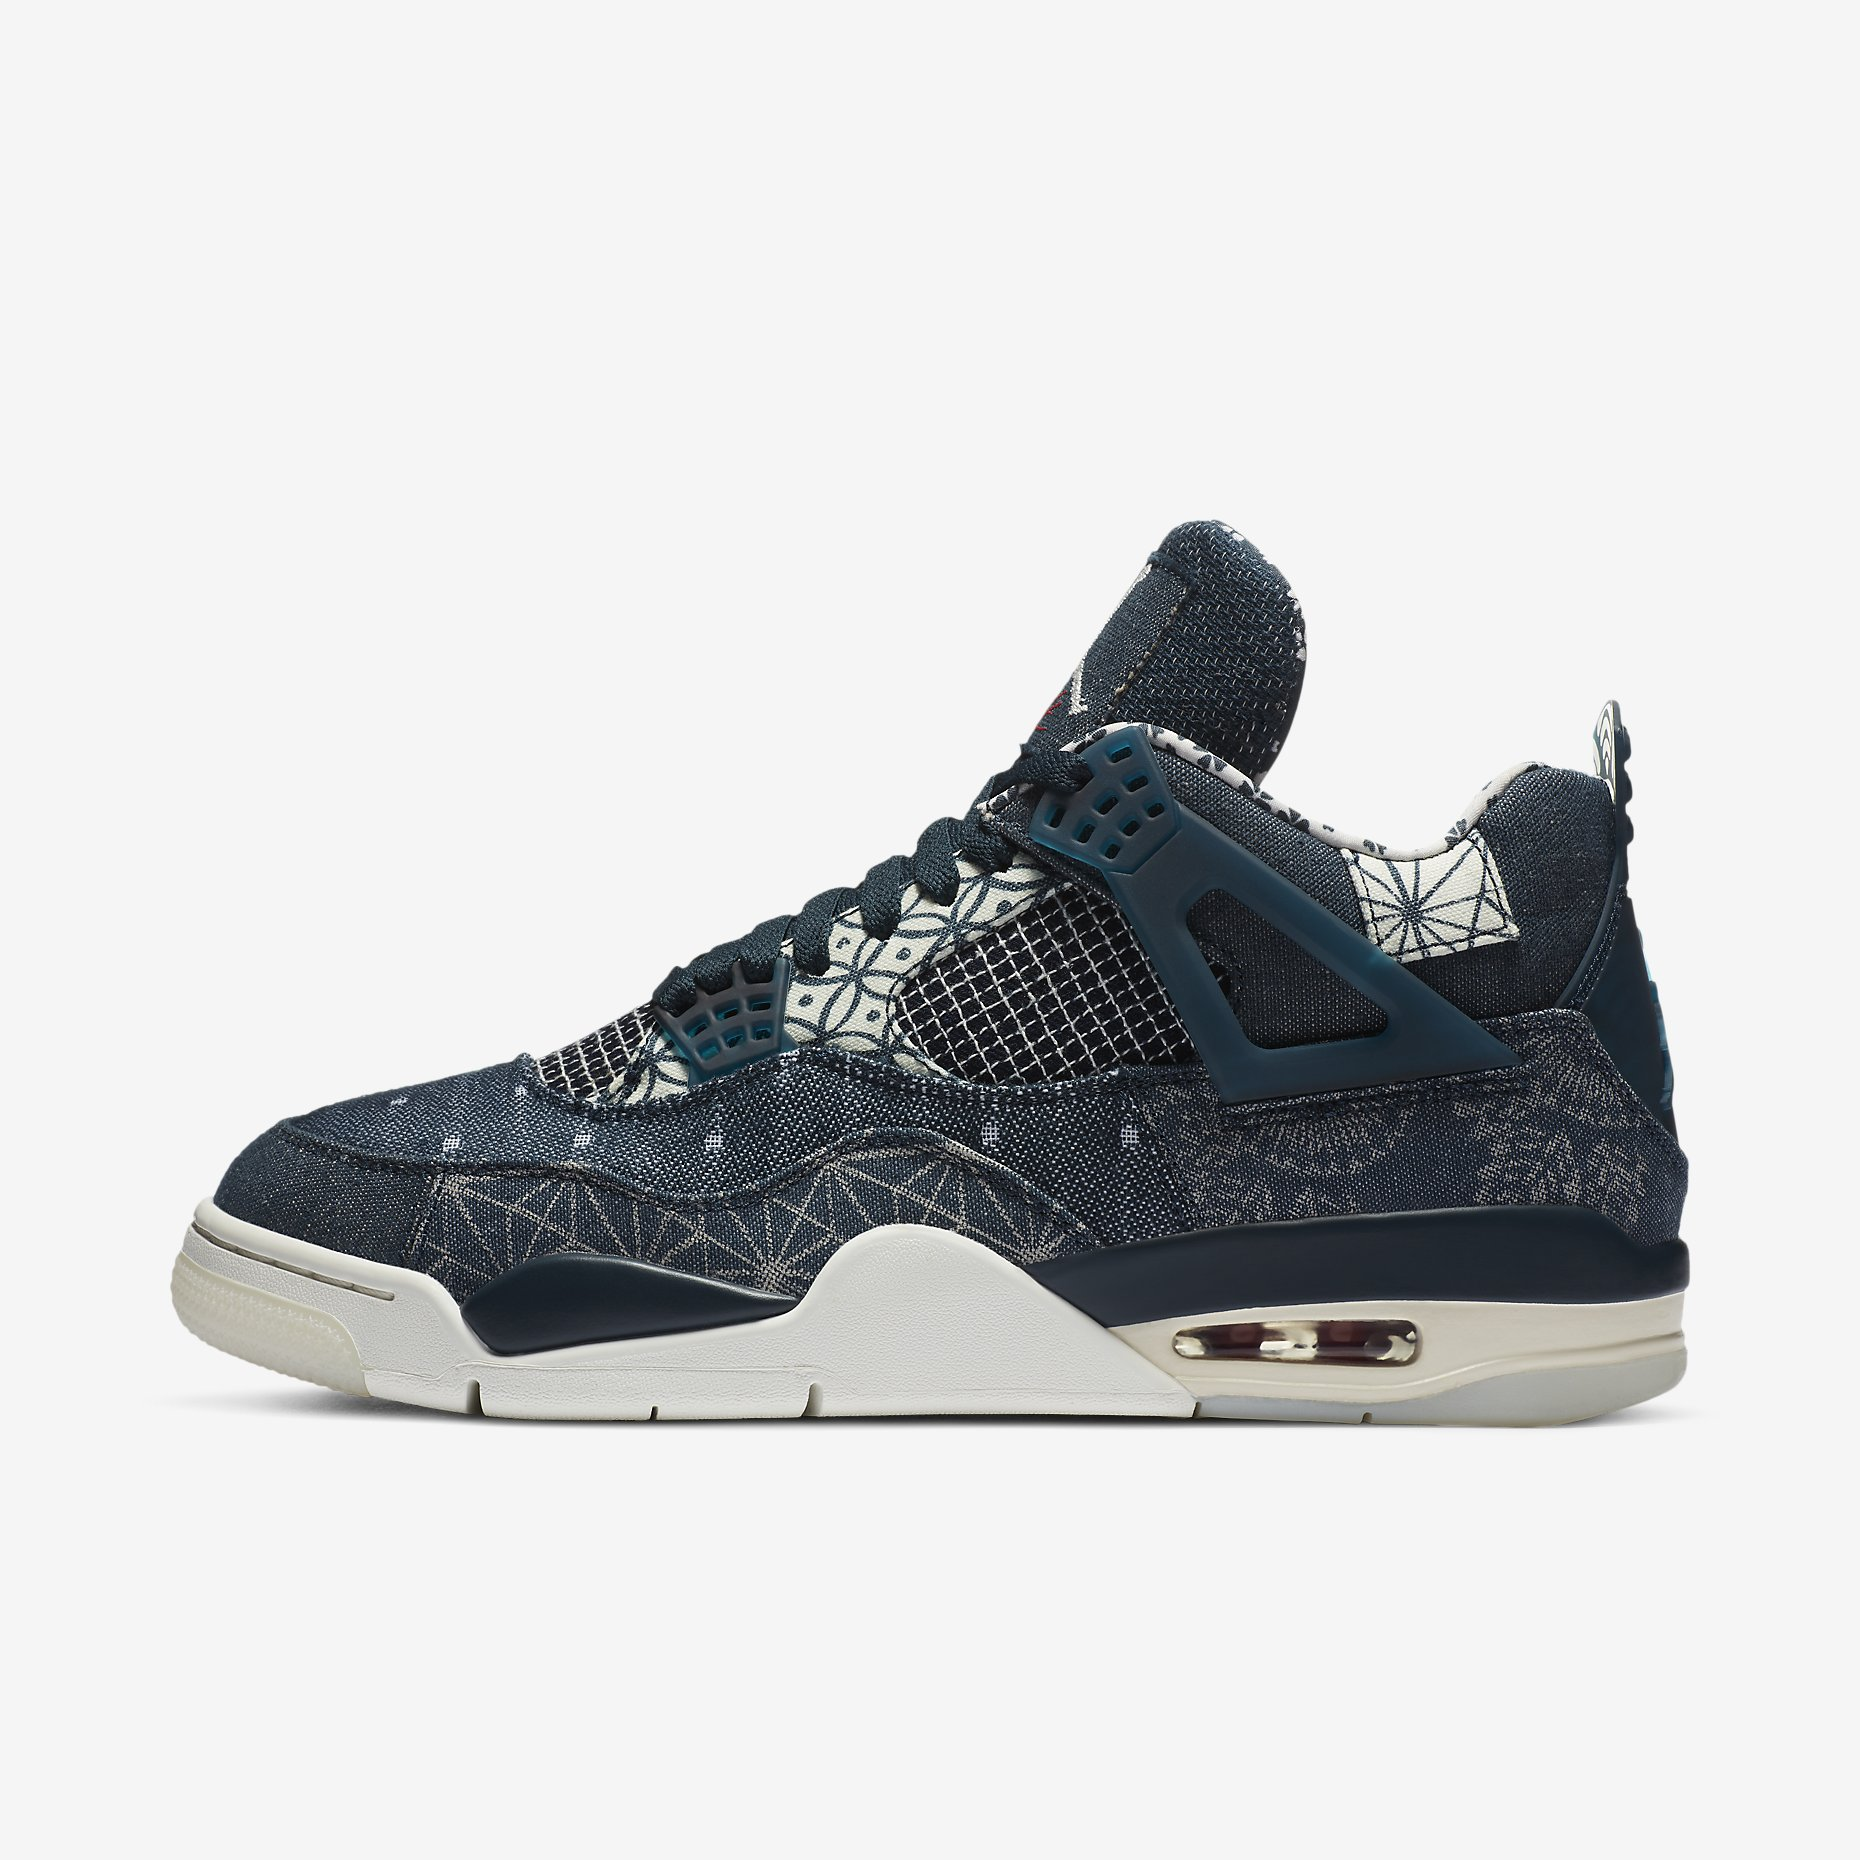 Air Jordan 4 Retro SE 'Sashiko'}